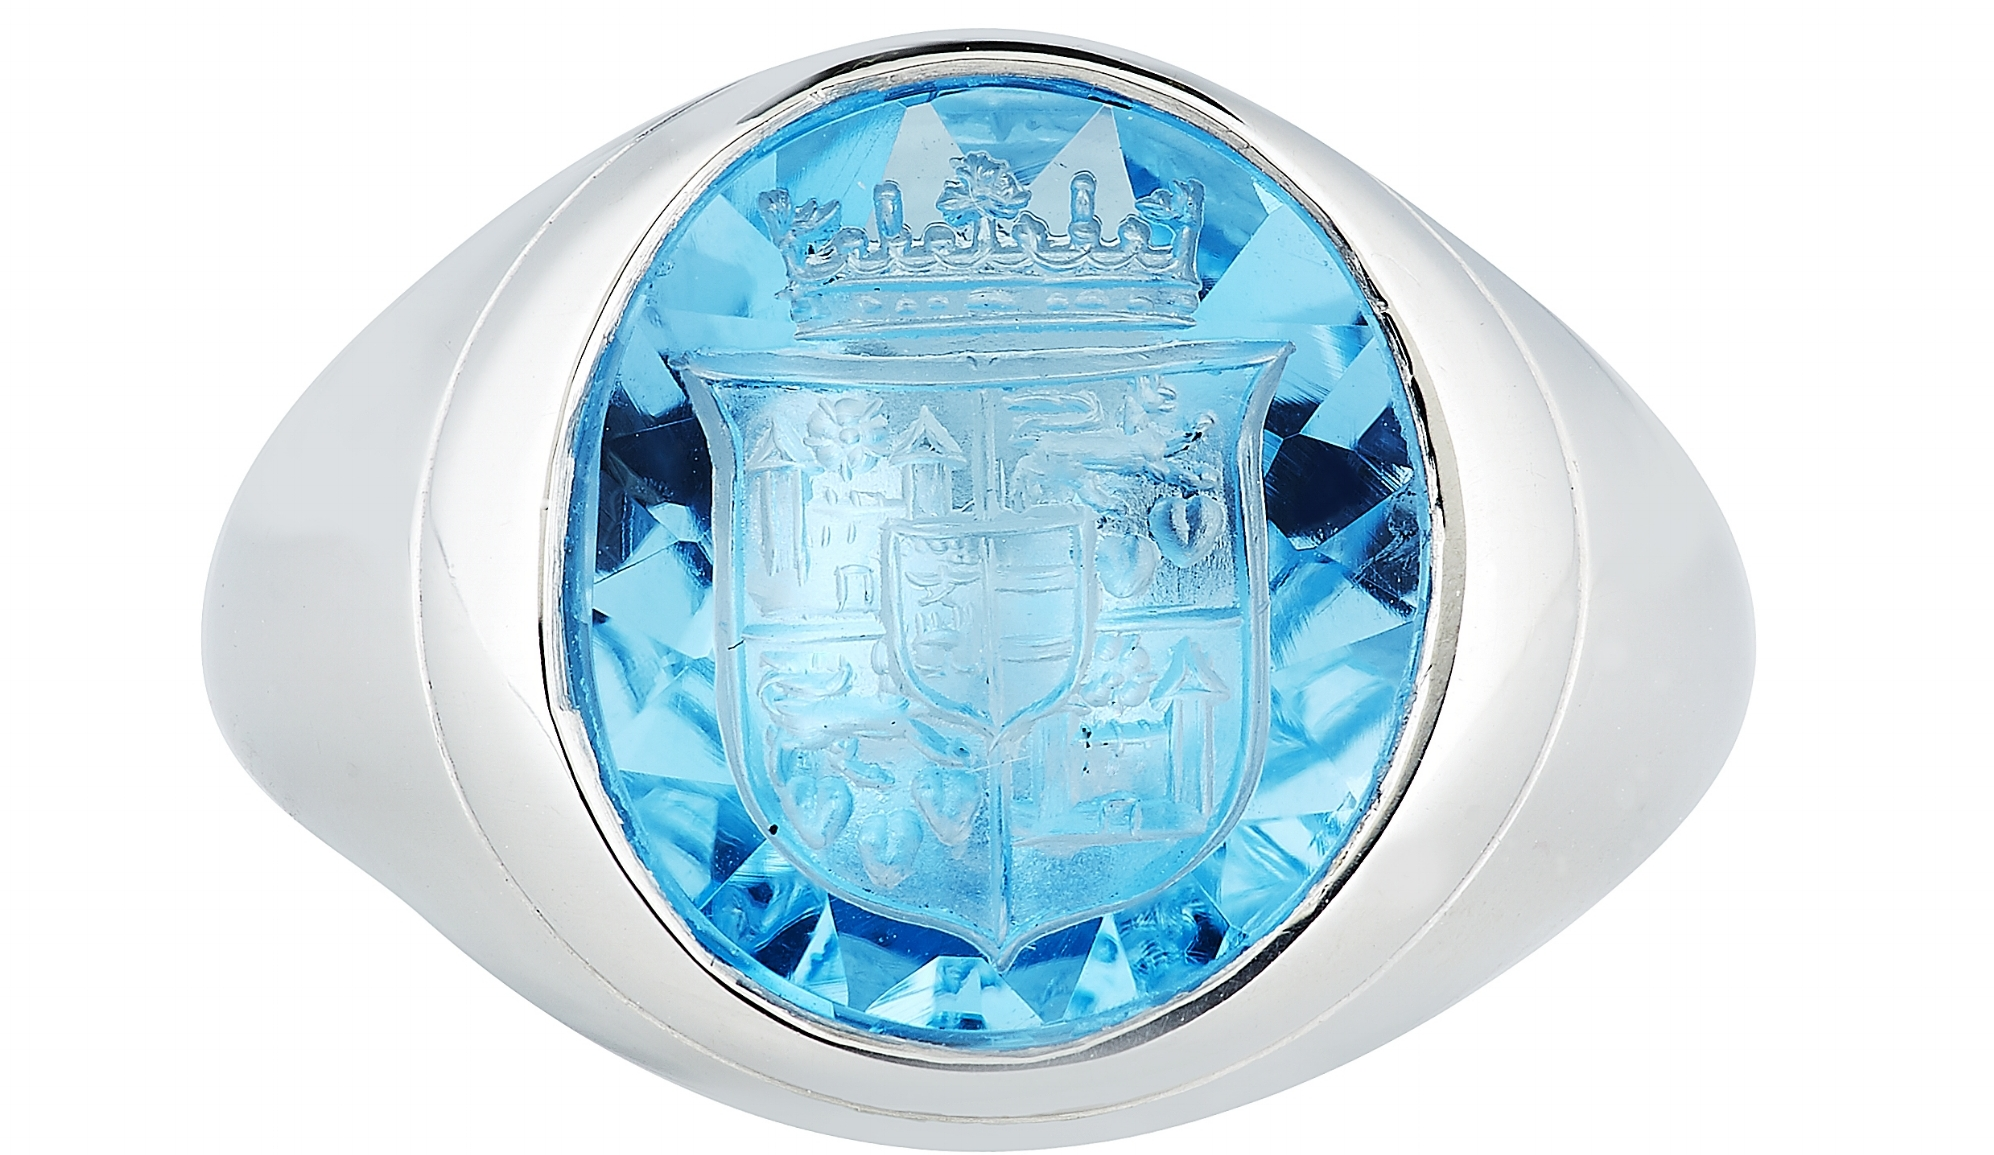 A platinum signet ring with the hand-engraved Royal Danish Coat of Arms from £9,750